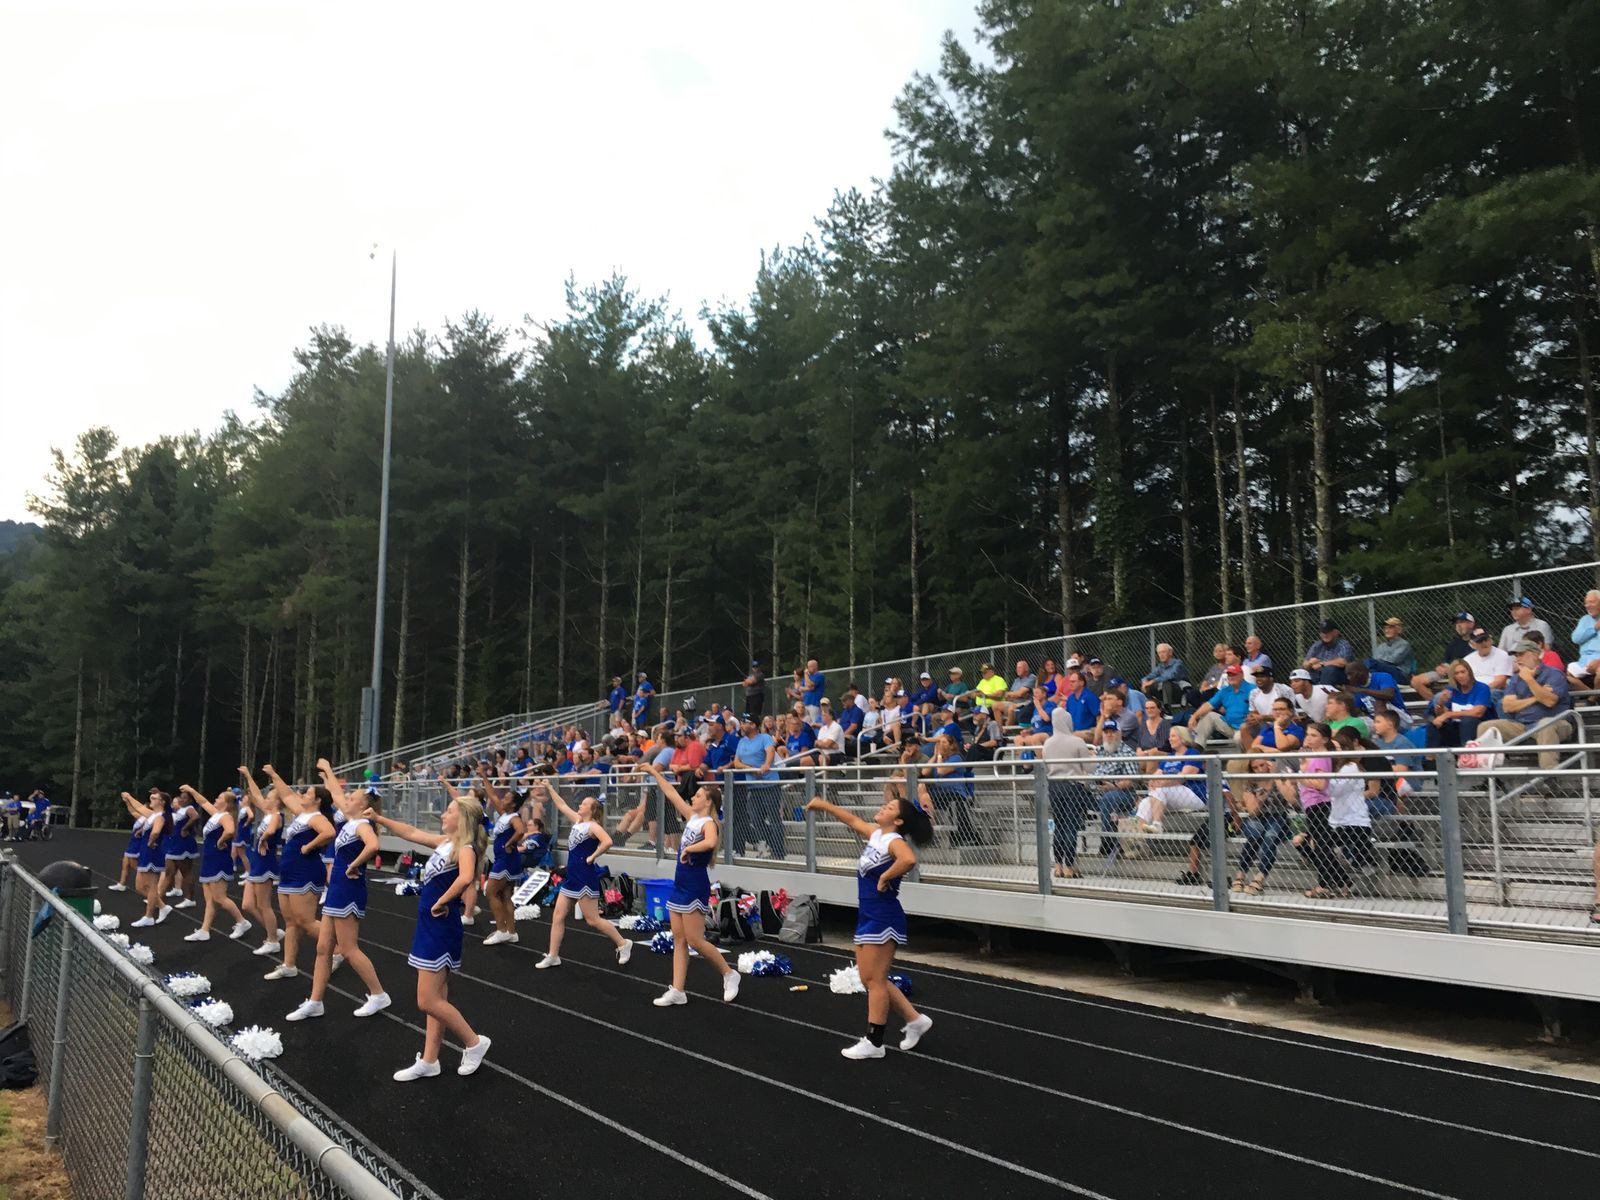 Brevard vs Mountain Heritage, 08-23-19 (Photo credit: WLOS Staff)